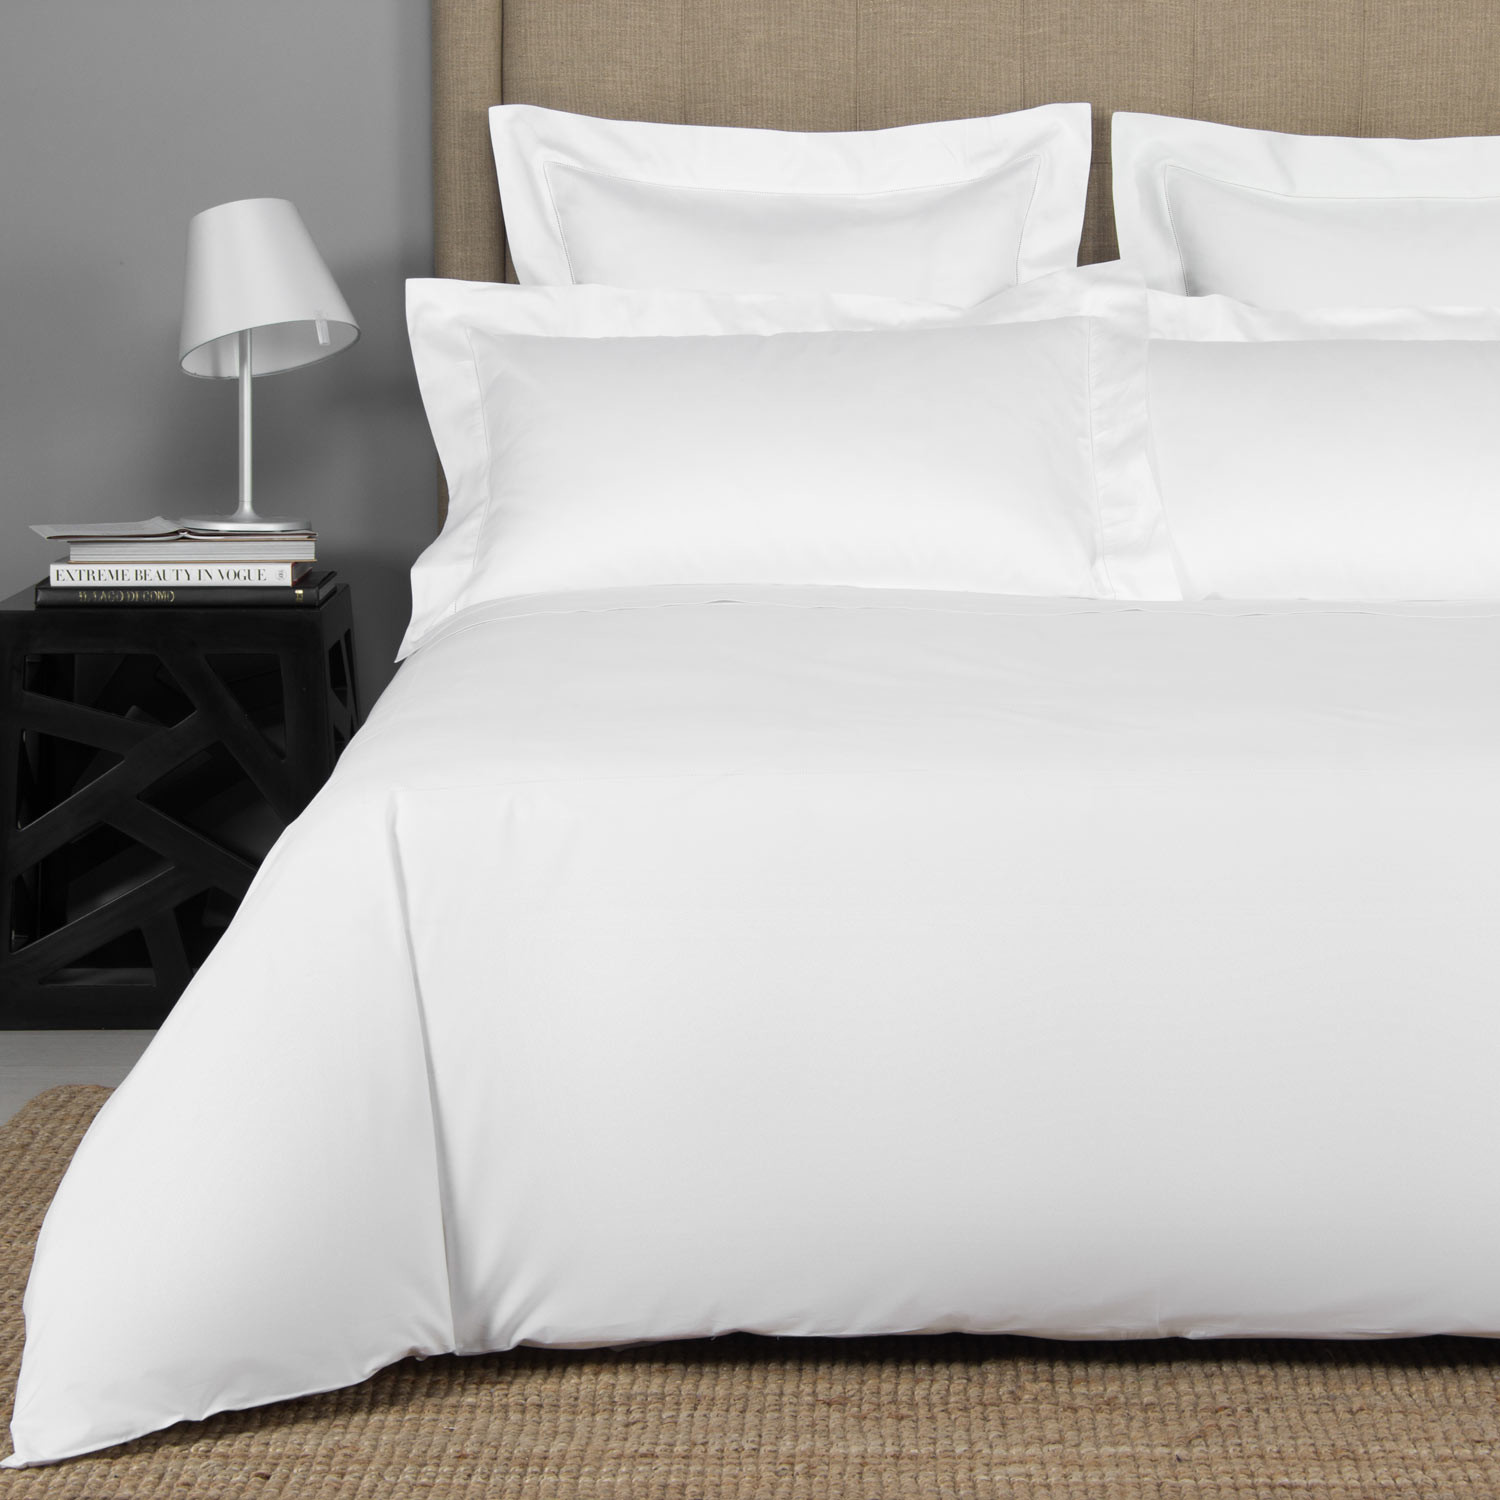 Find great deals on eBay for white king duvet cover. Shop with confidence.